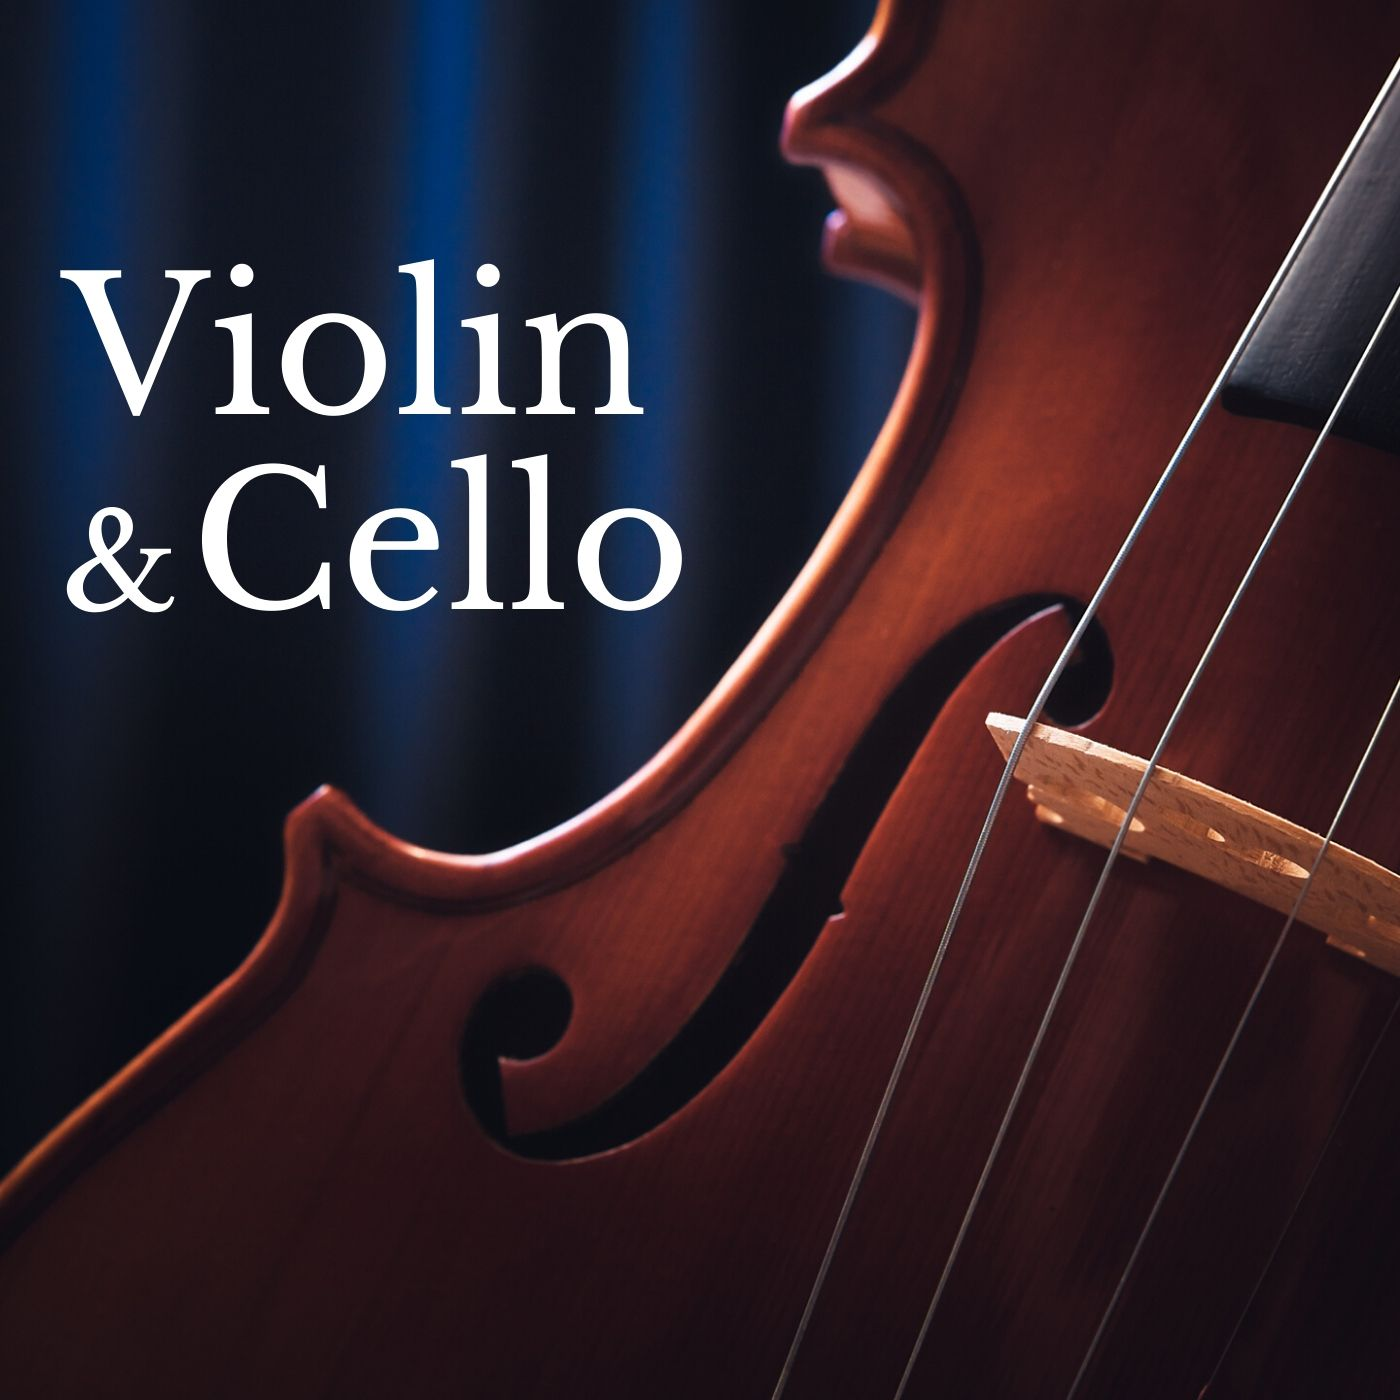 Violin & Cello - Classical Music